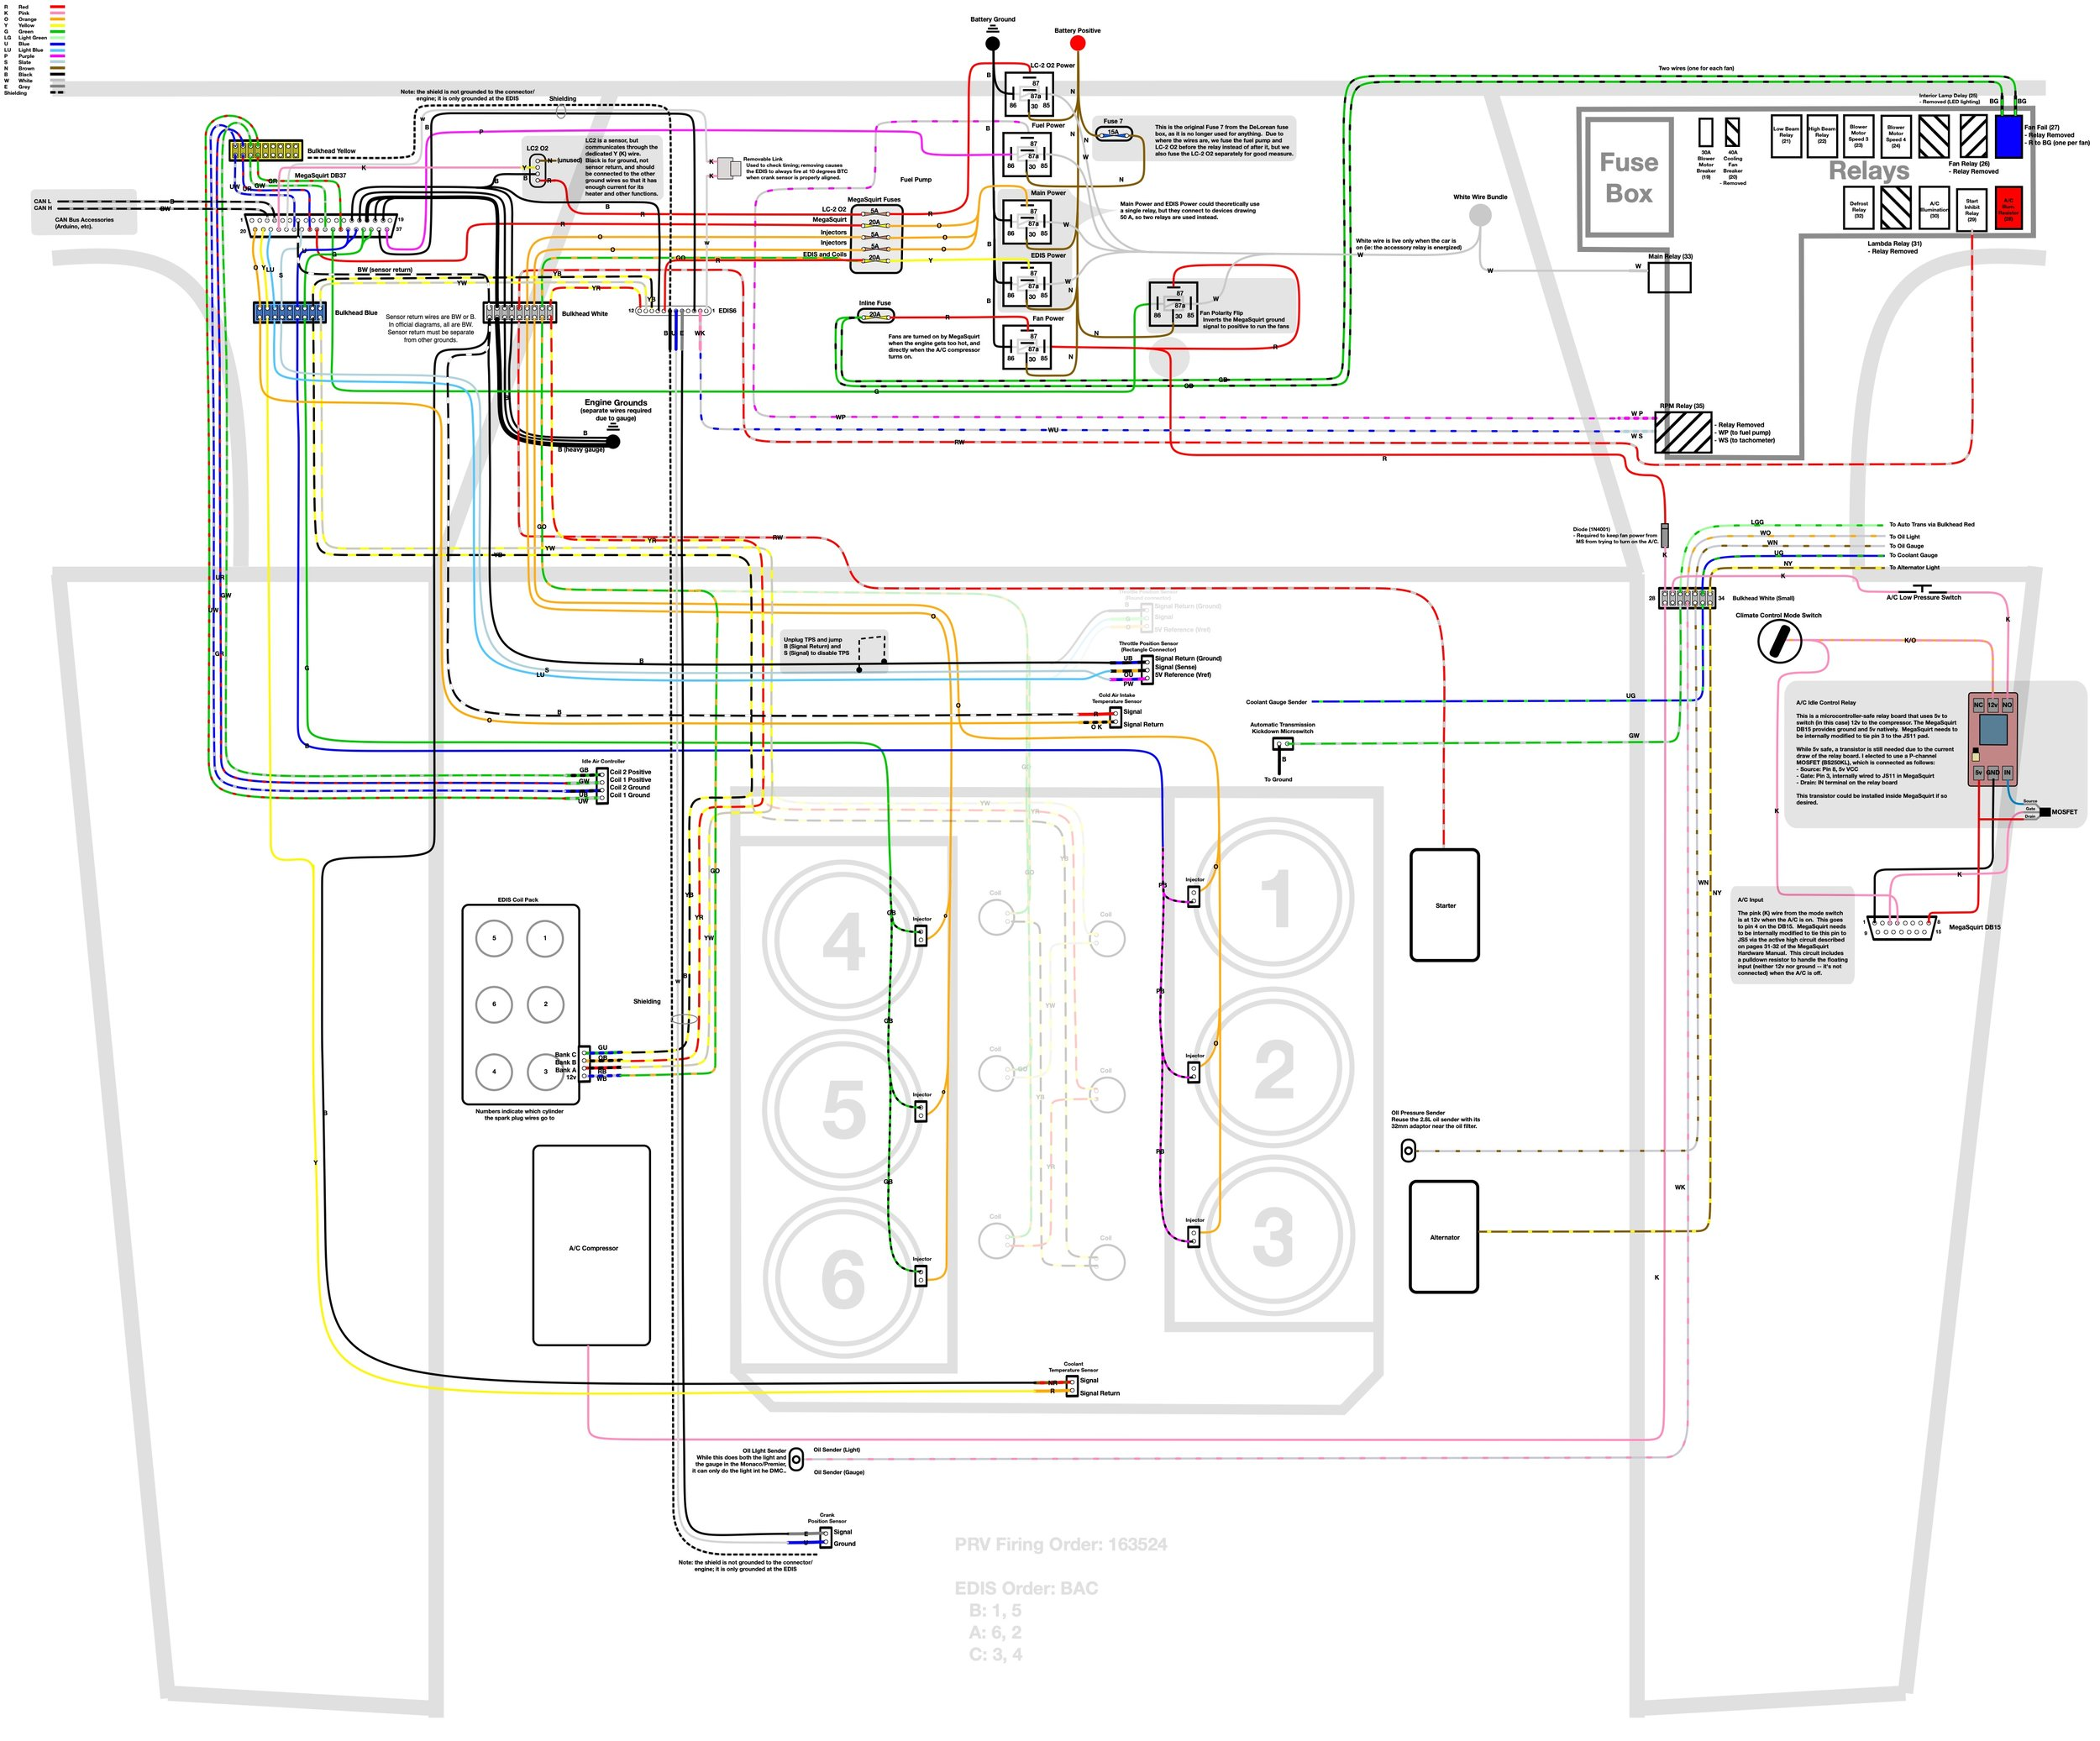 delorean wiring diagrams library [ 1500 x 1244 Pixel ]